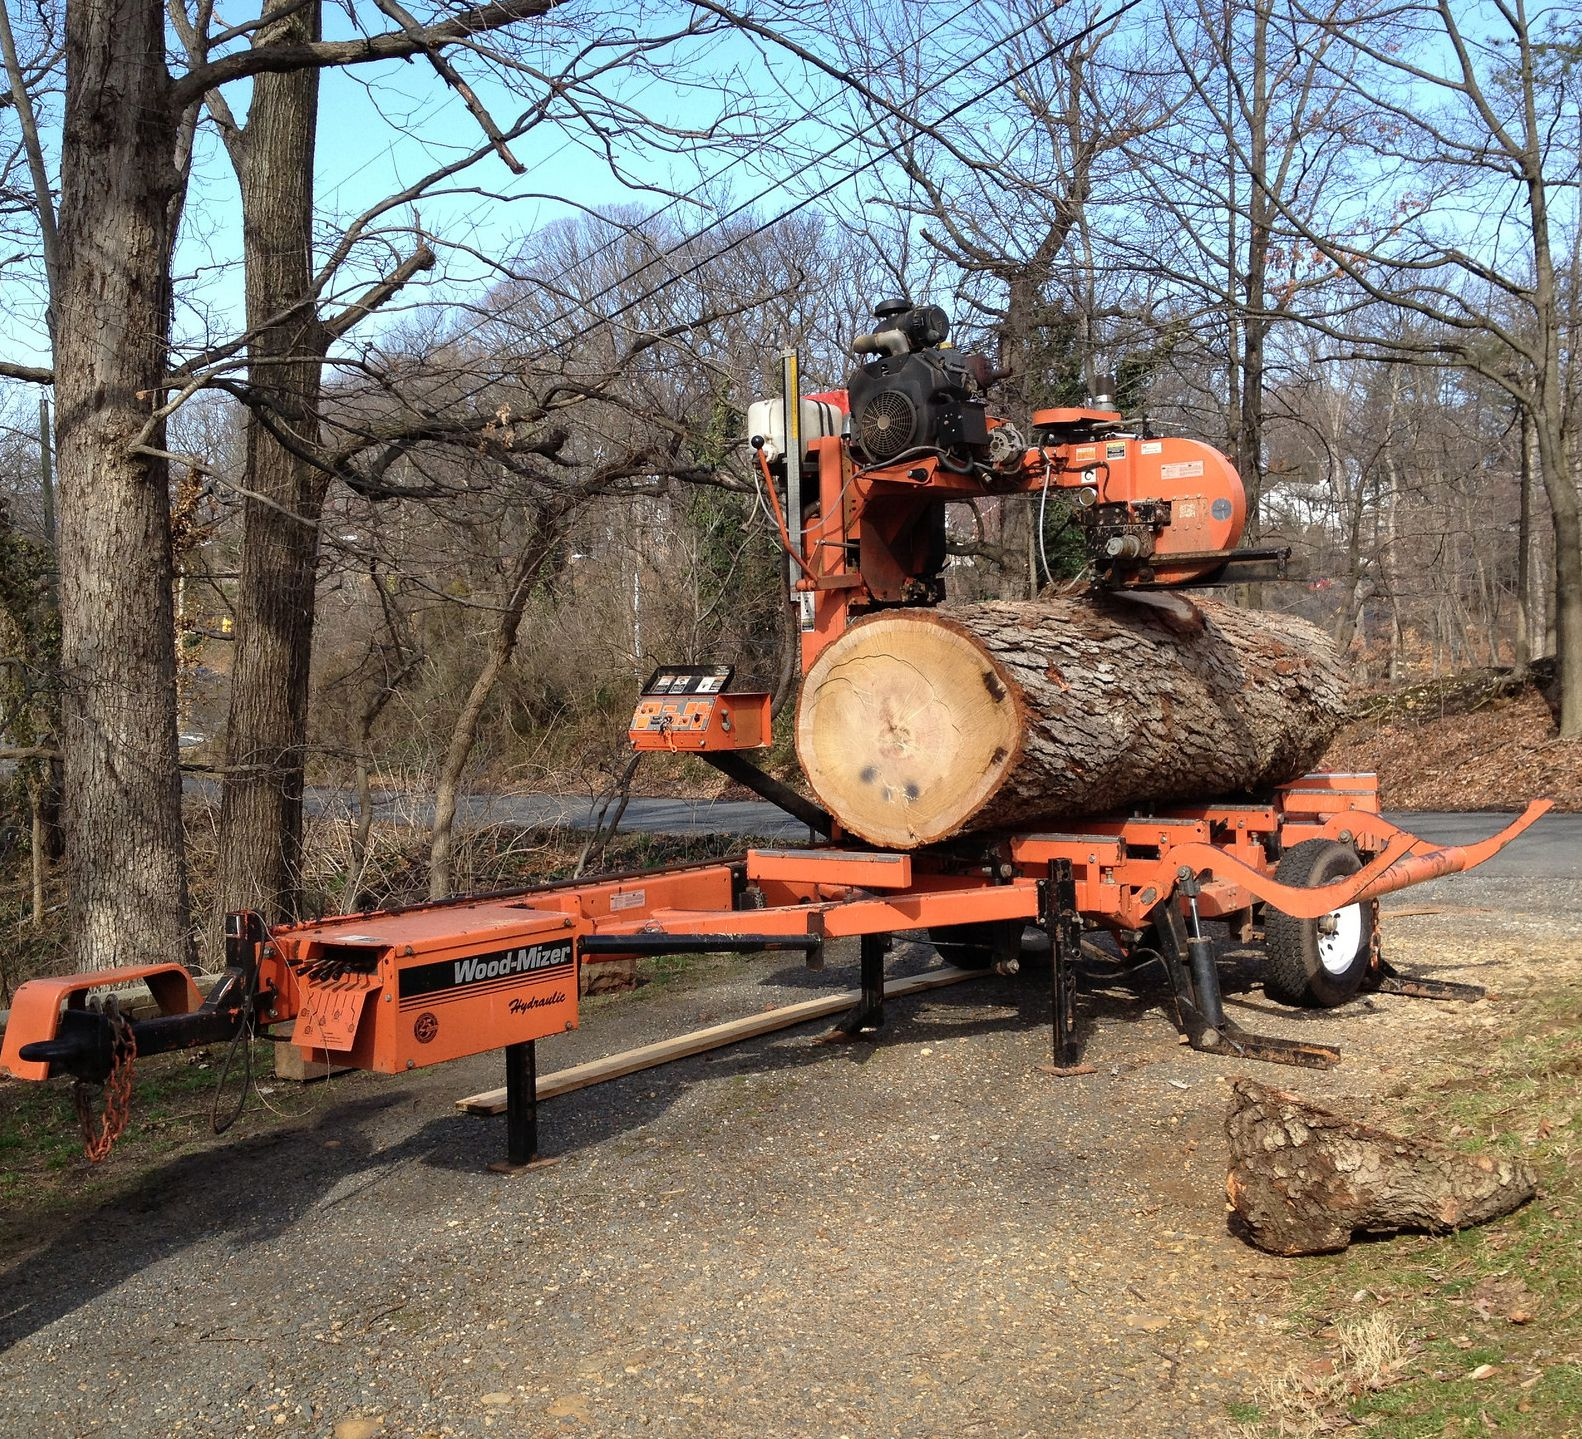 Woodmizer Sawmill For Sale >> Portable Sawmills What Should You Buy